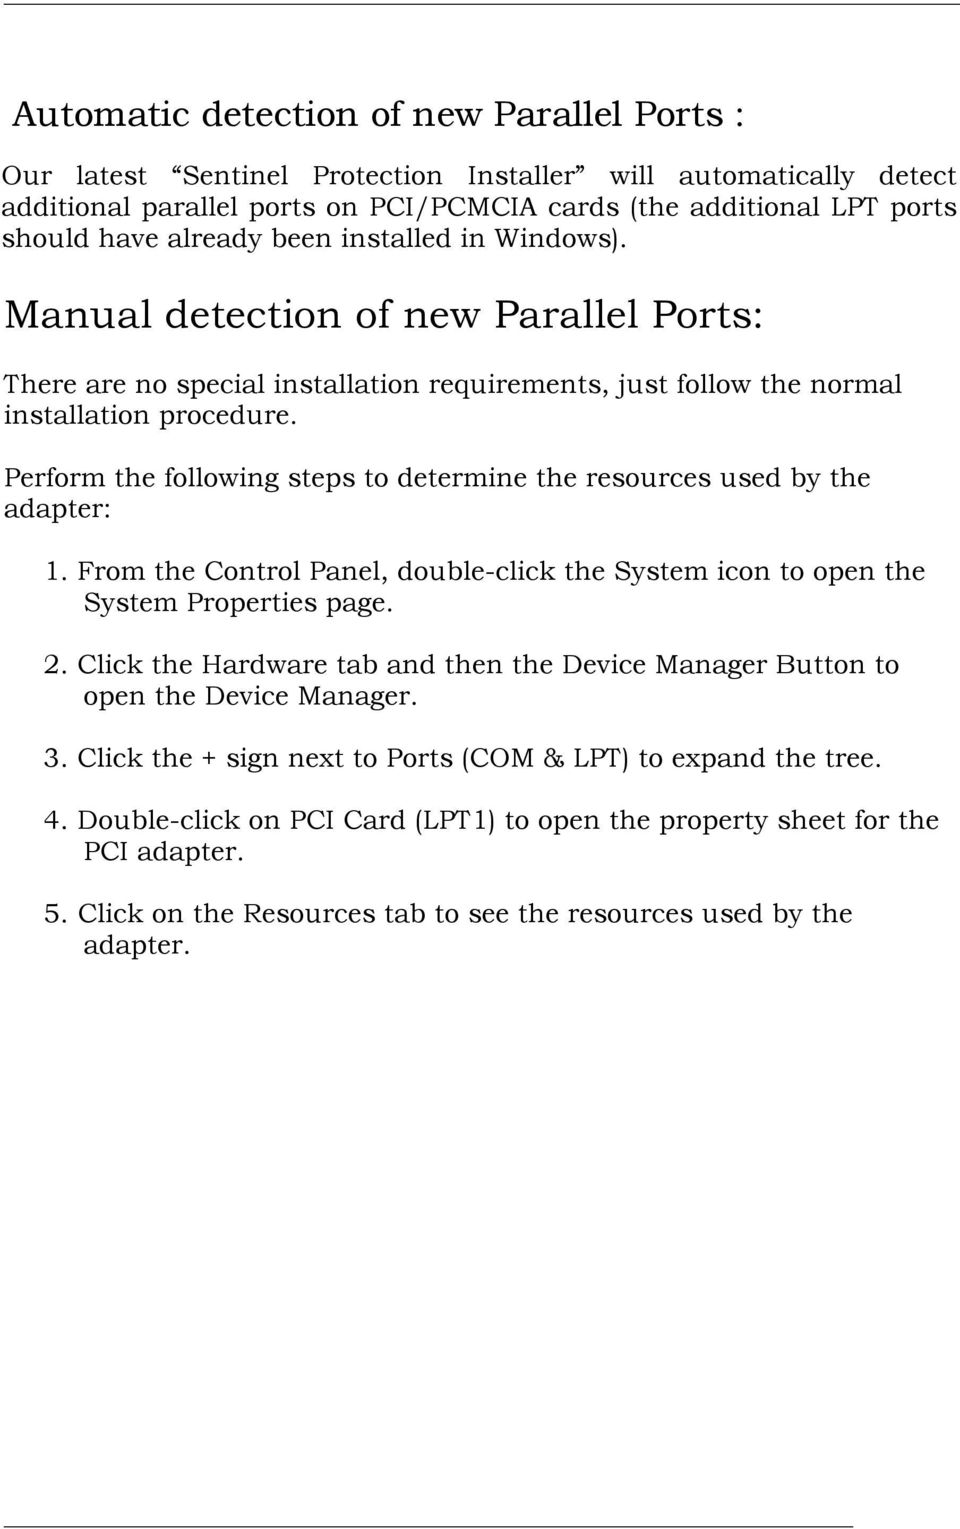 Perform the following steps to determine the resources used by the adapter: 1. From the Control Panel, double-click the System icon to open the System Properties page. 2.